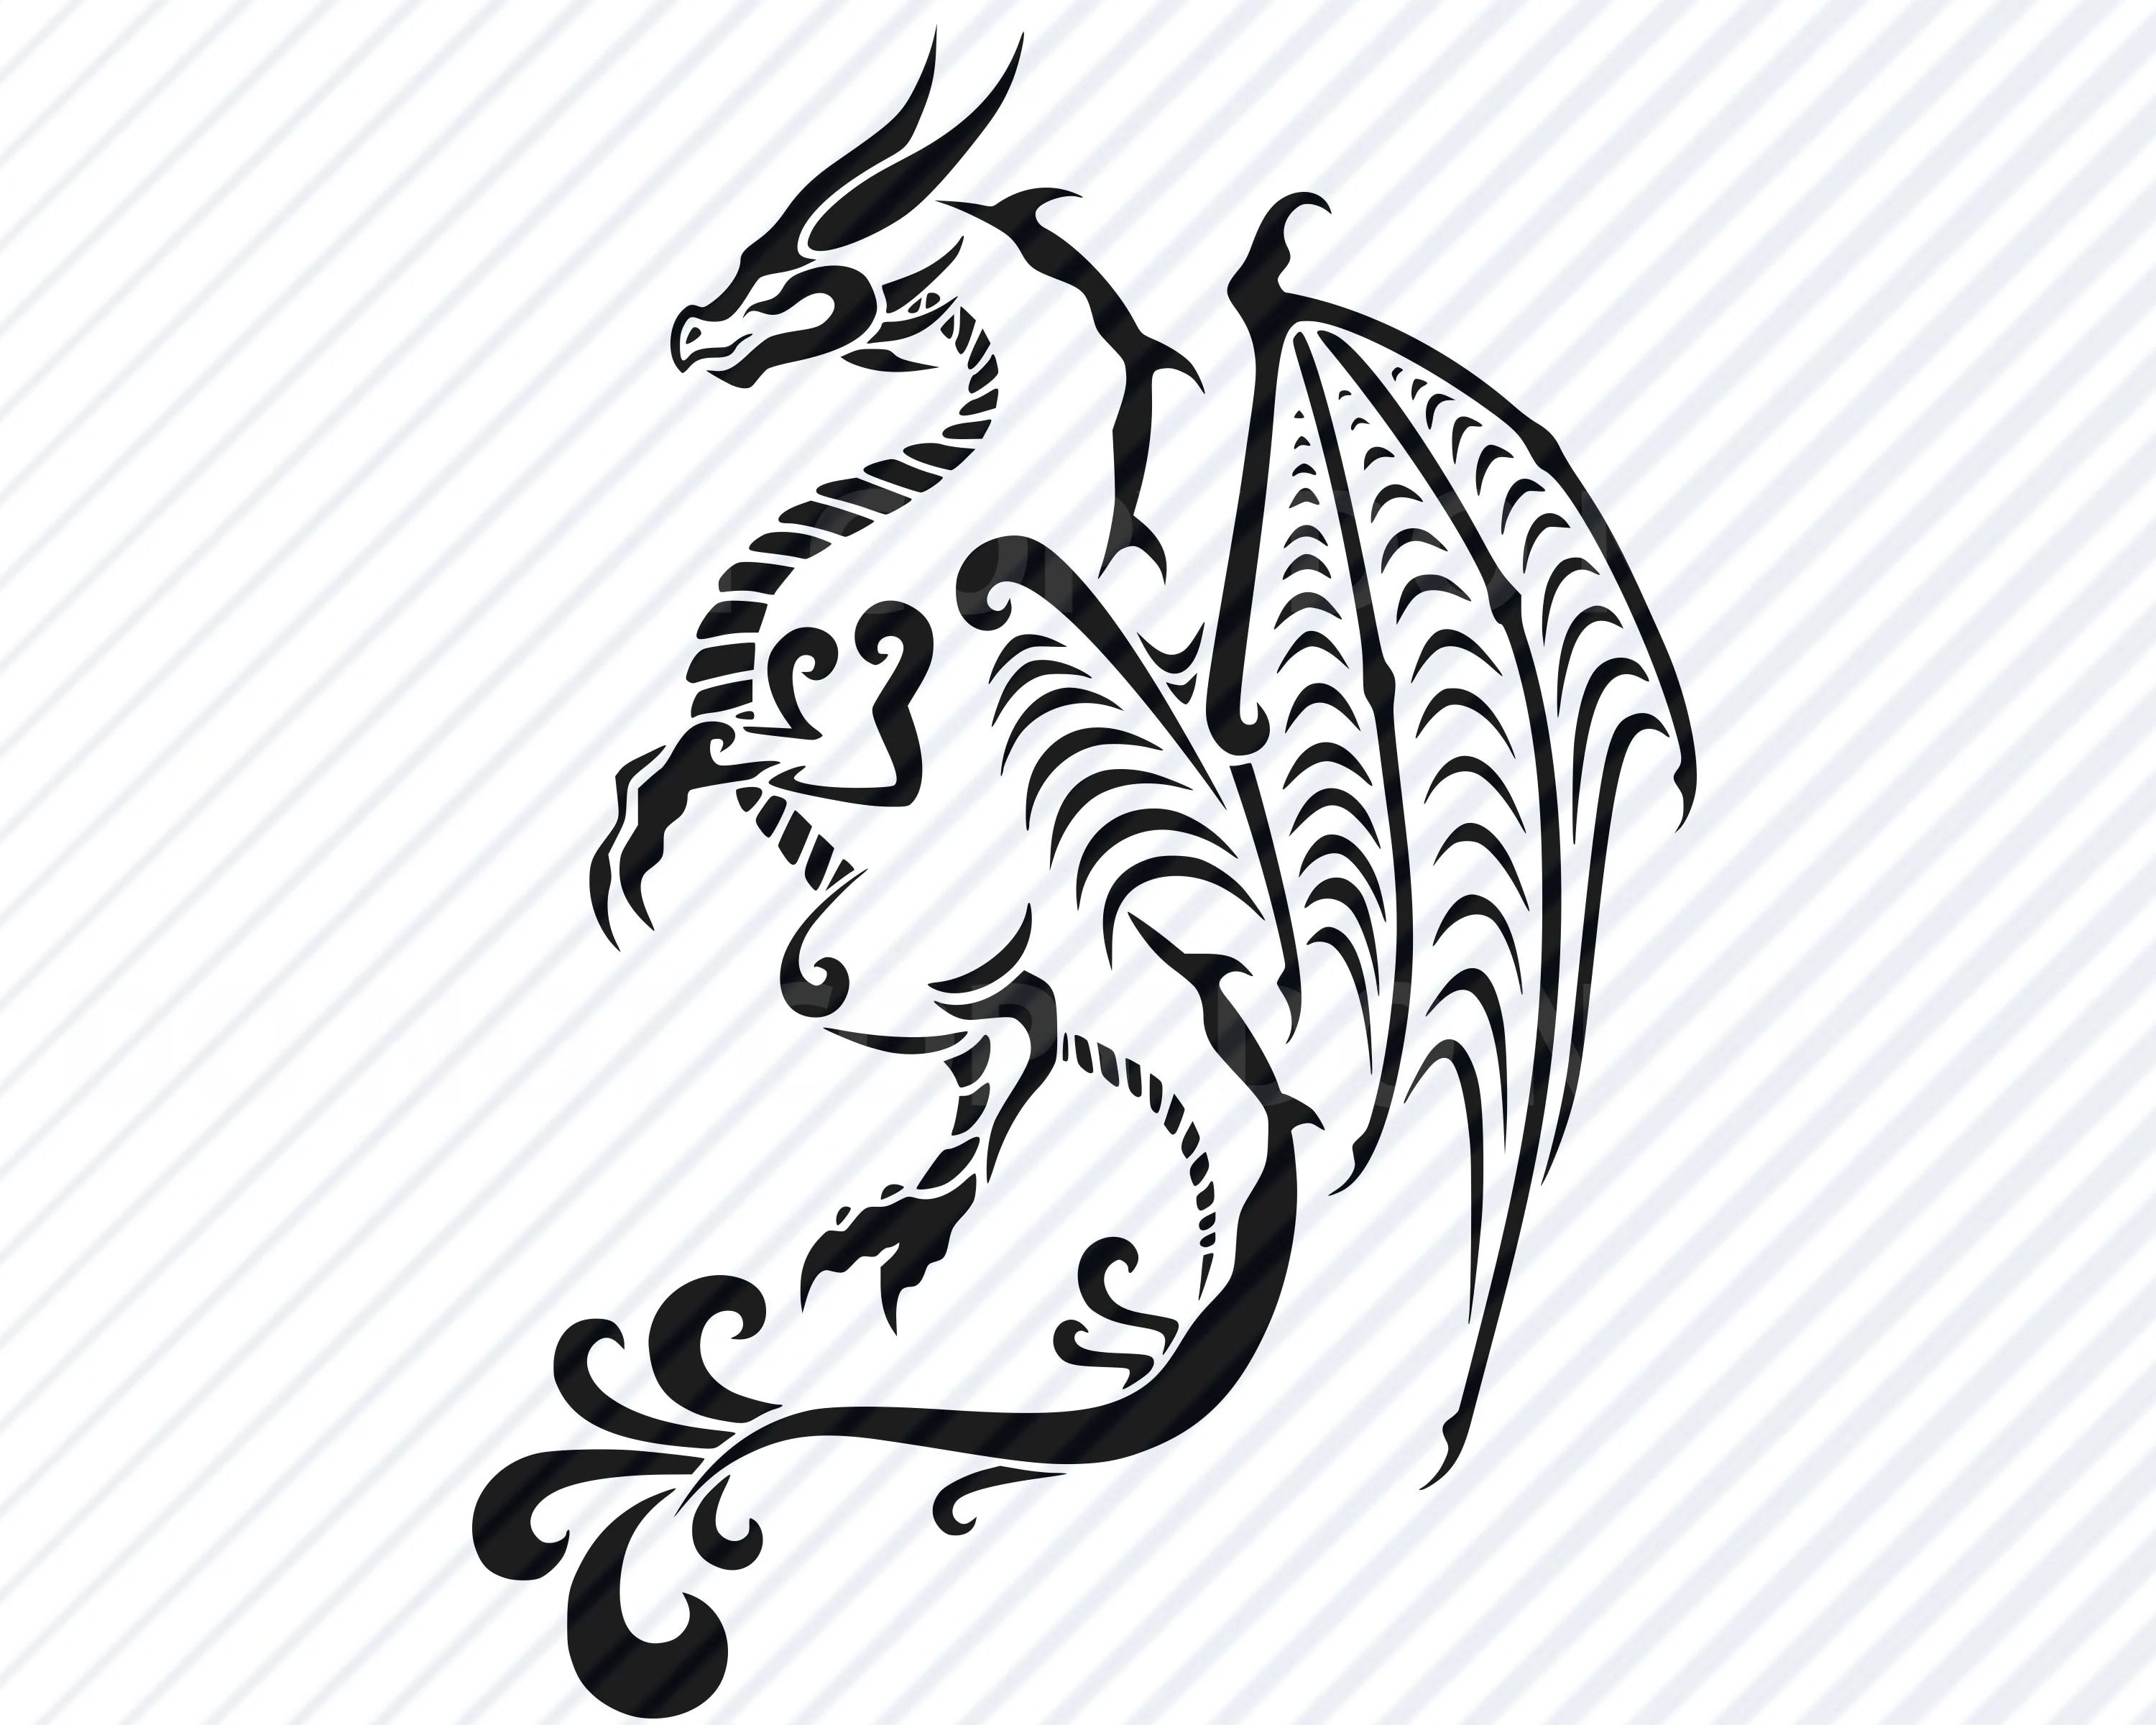 Dragon 4 Fantasy Svg Files Silhouette Vector Images